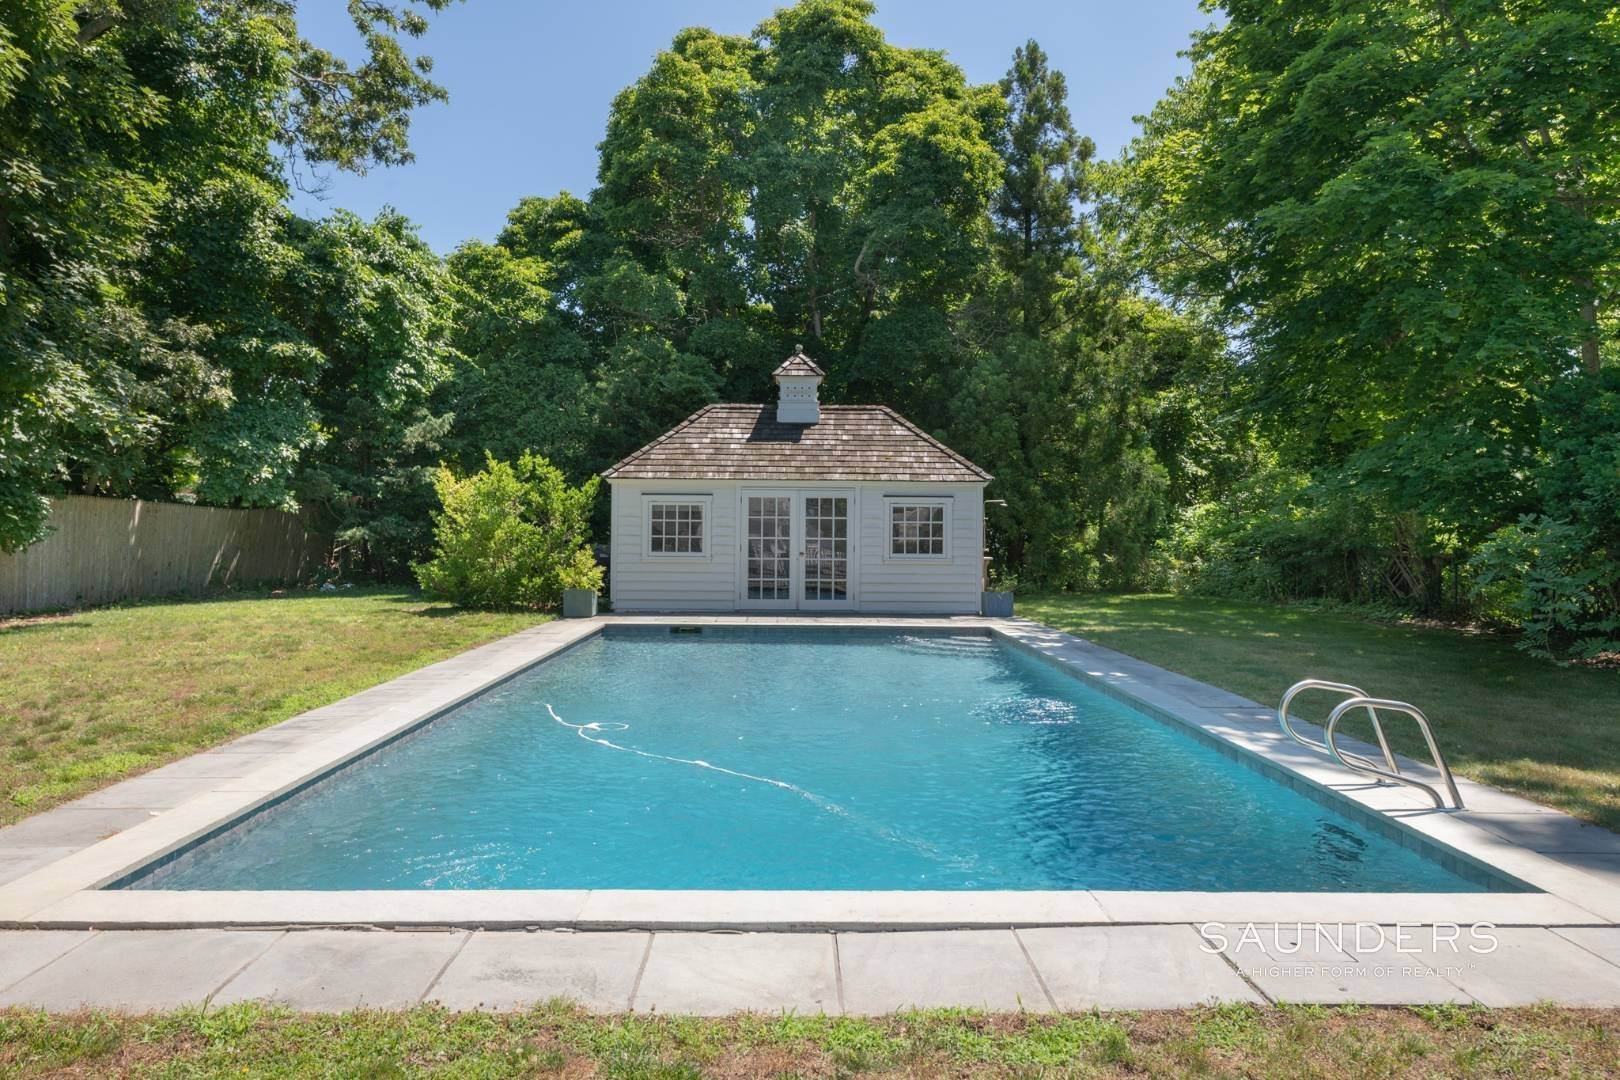 2. Single Family Homes for Sale at Charming Quogue Cottage South Of The Highway 34 Lamb Avenue, Quogue Village, Southampton Town, NY 11959